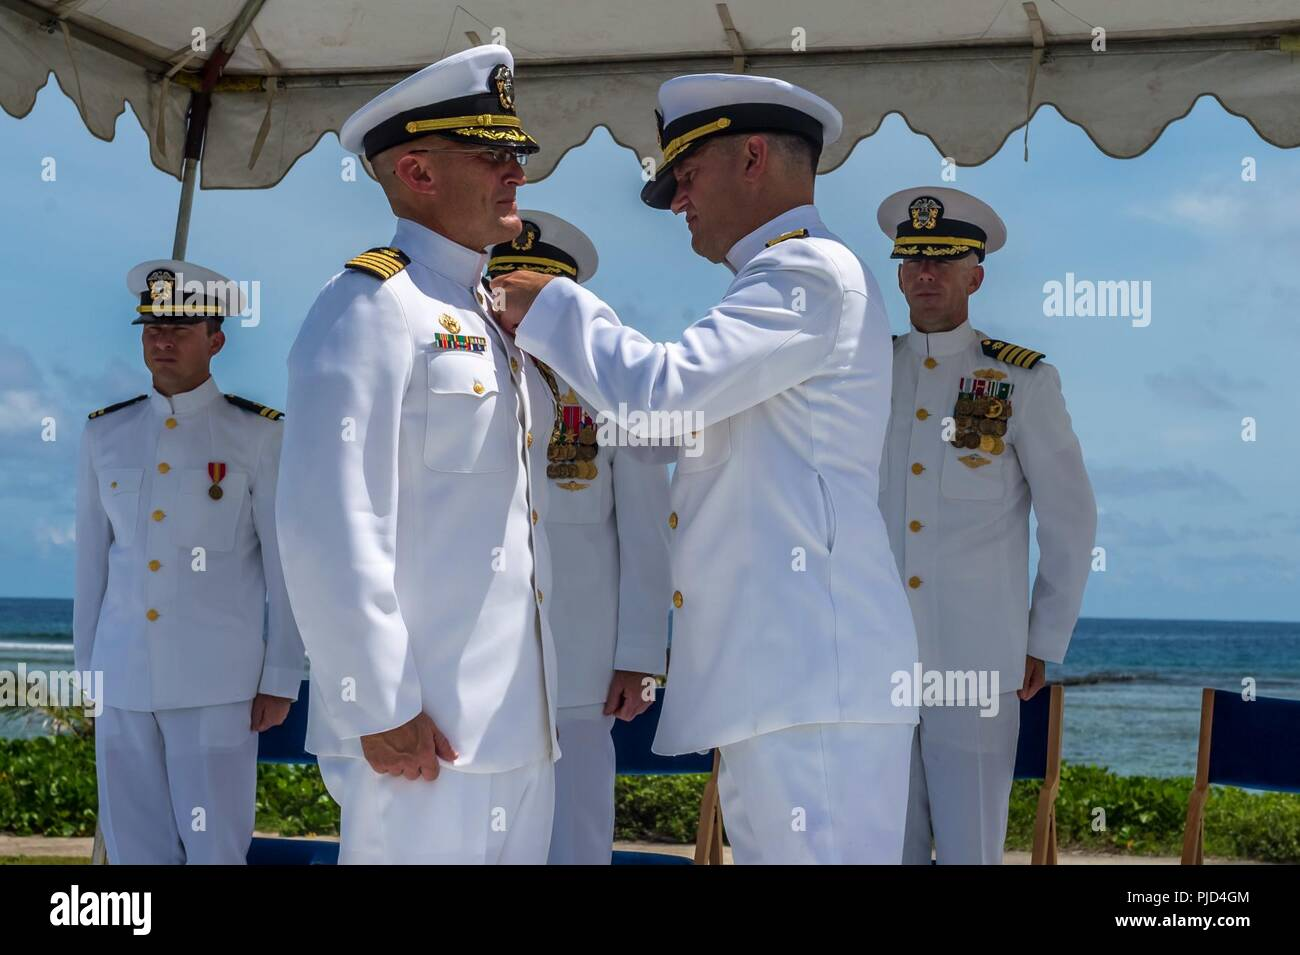 ASAN BEACH, Guam (July 19, 2018) Rear Adm. Troy McClelland, Deputy Commander for the Naval Construction Force, Navy Expeditionary Command, presents Capt. Jeffrey Kilian with a Legion of Merit for his accomplishments as commodore of the 30th Naval Construction Regiment during the regiment's change of command ceremony at the War in the Pacific National Historical Park Asan Beach Unit. During the ceremony, Capt. Steven Stasick relieved Kilian as commodore of 30 NCR. Stock Photo